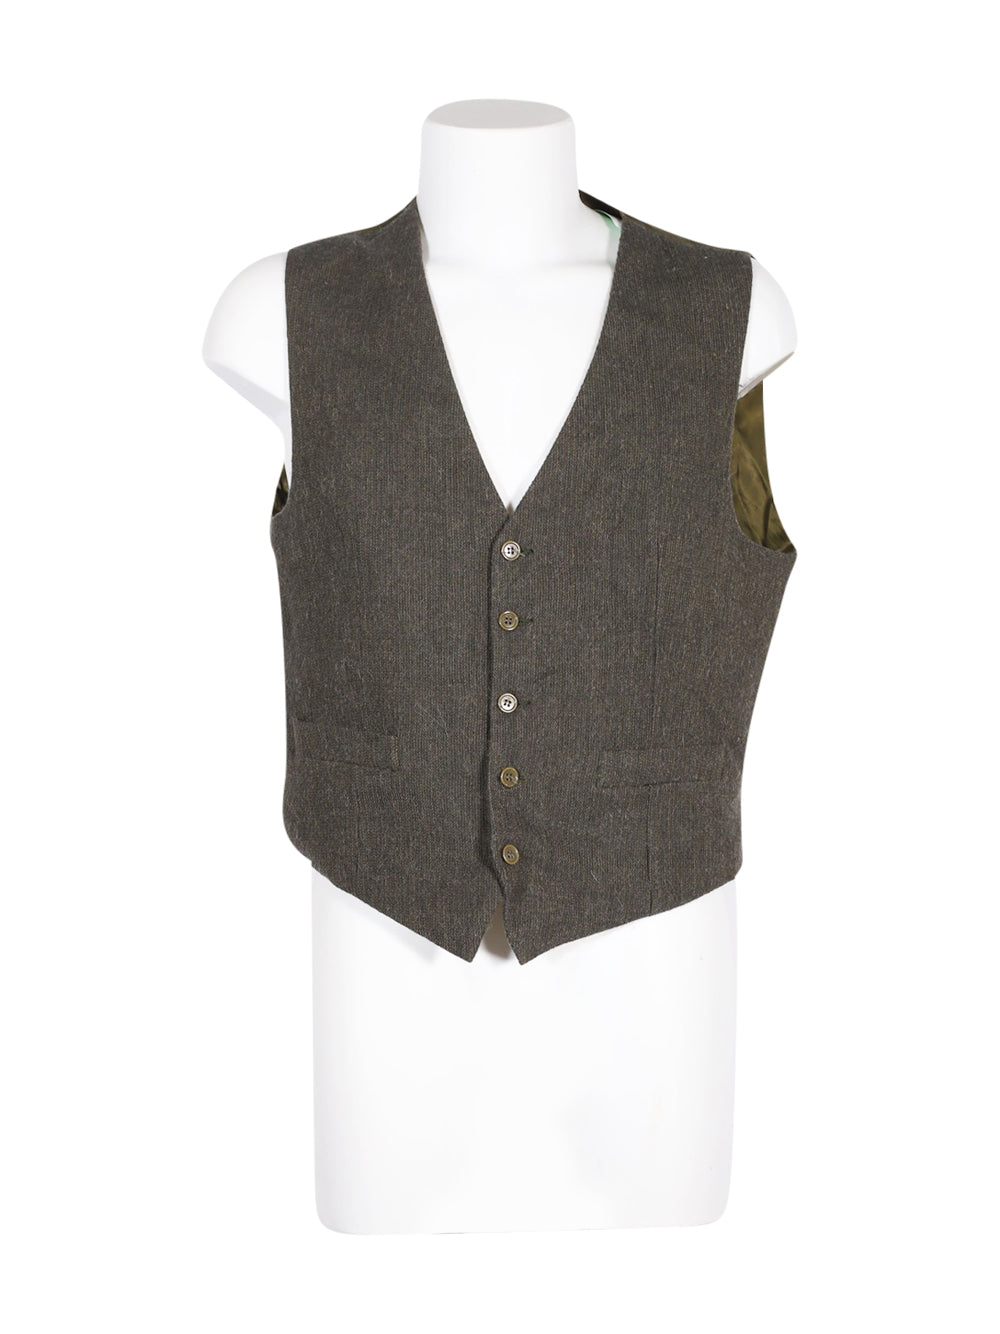 Front photo of Preloved nuccio d'ottavio sarto Green Man's waistcoat - size 40/L